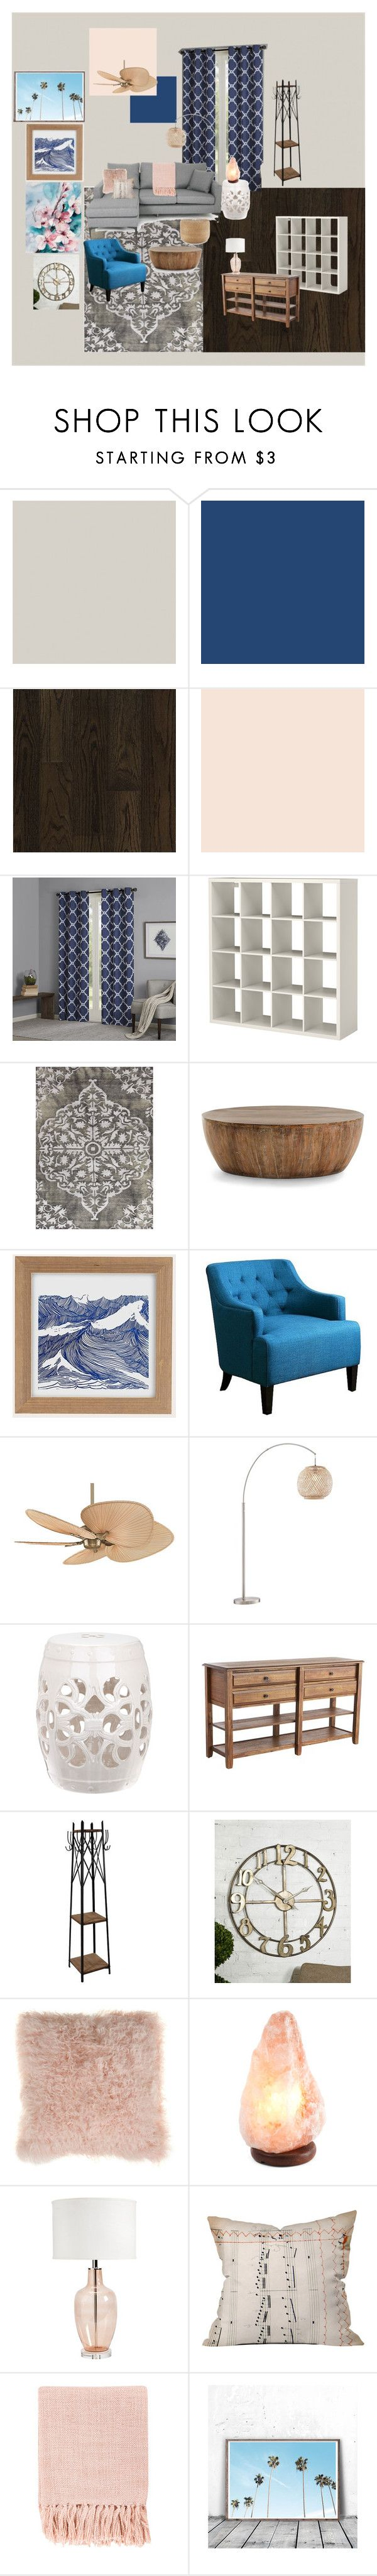 """Navy & Peach Living Room"" by its816am on Polyvore featuring interior, interiors, interior design, home, home decor, interior decorating, SANDERSON, Home Decorators Collection, Madison Park and Jaipur"